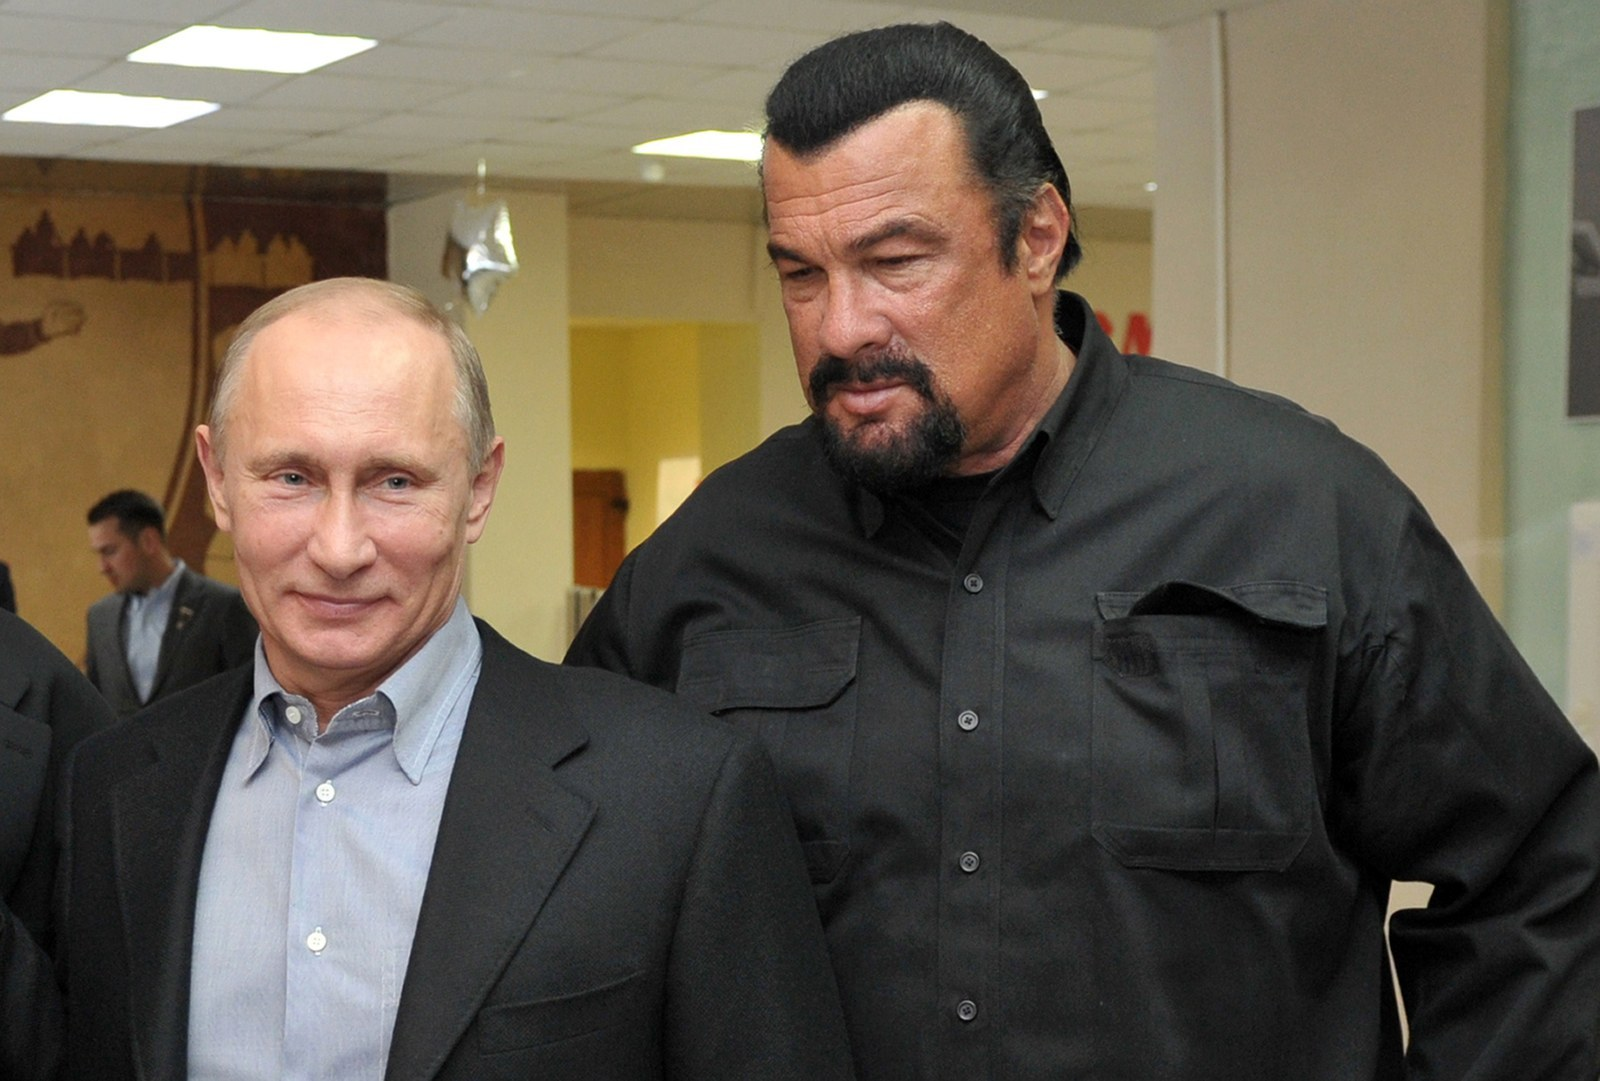 Putin's Action Hero: How Steven Seagal Became the Kremlin's Unlikeliest Envoy